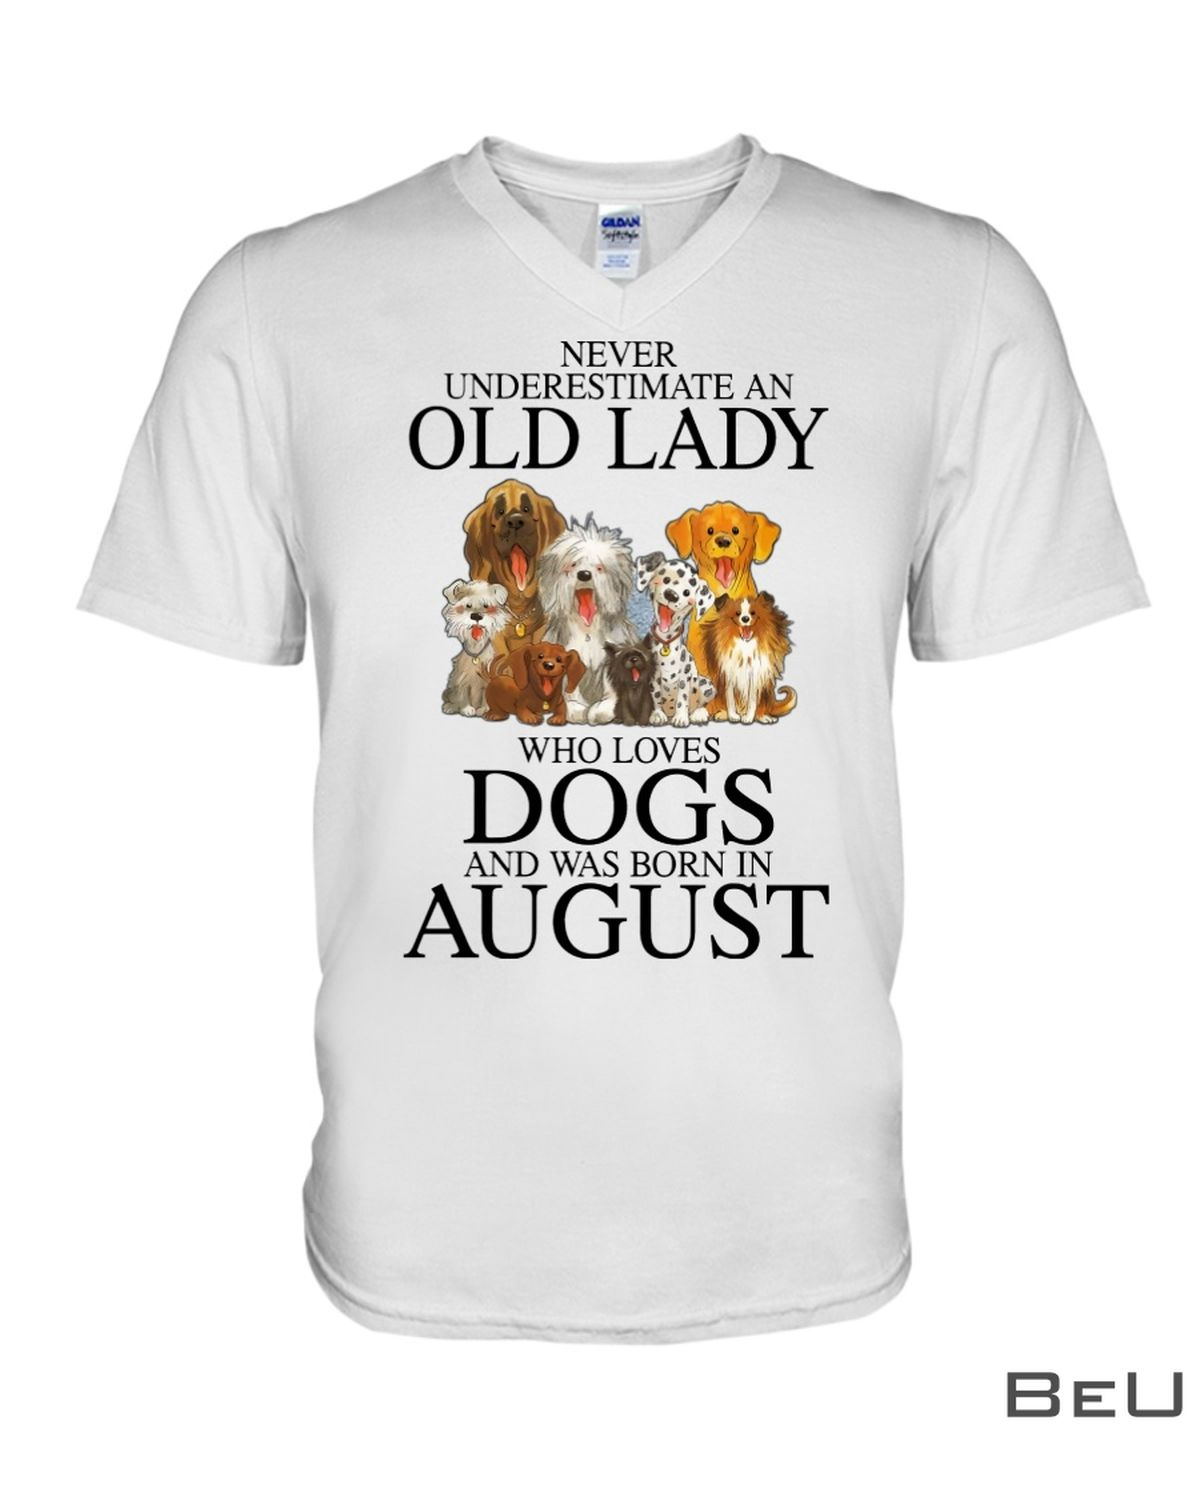 Never underestimate an old lady who loves dogs and was born in August shirtx